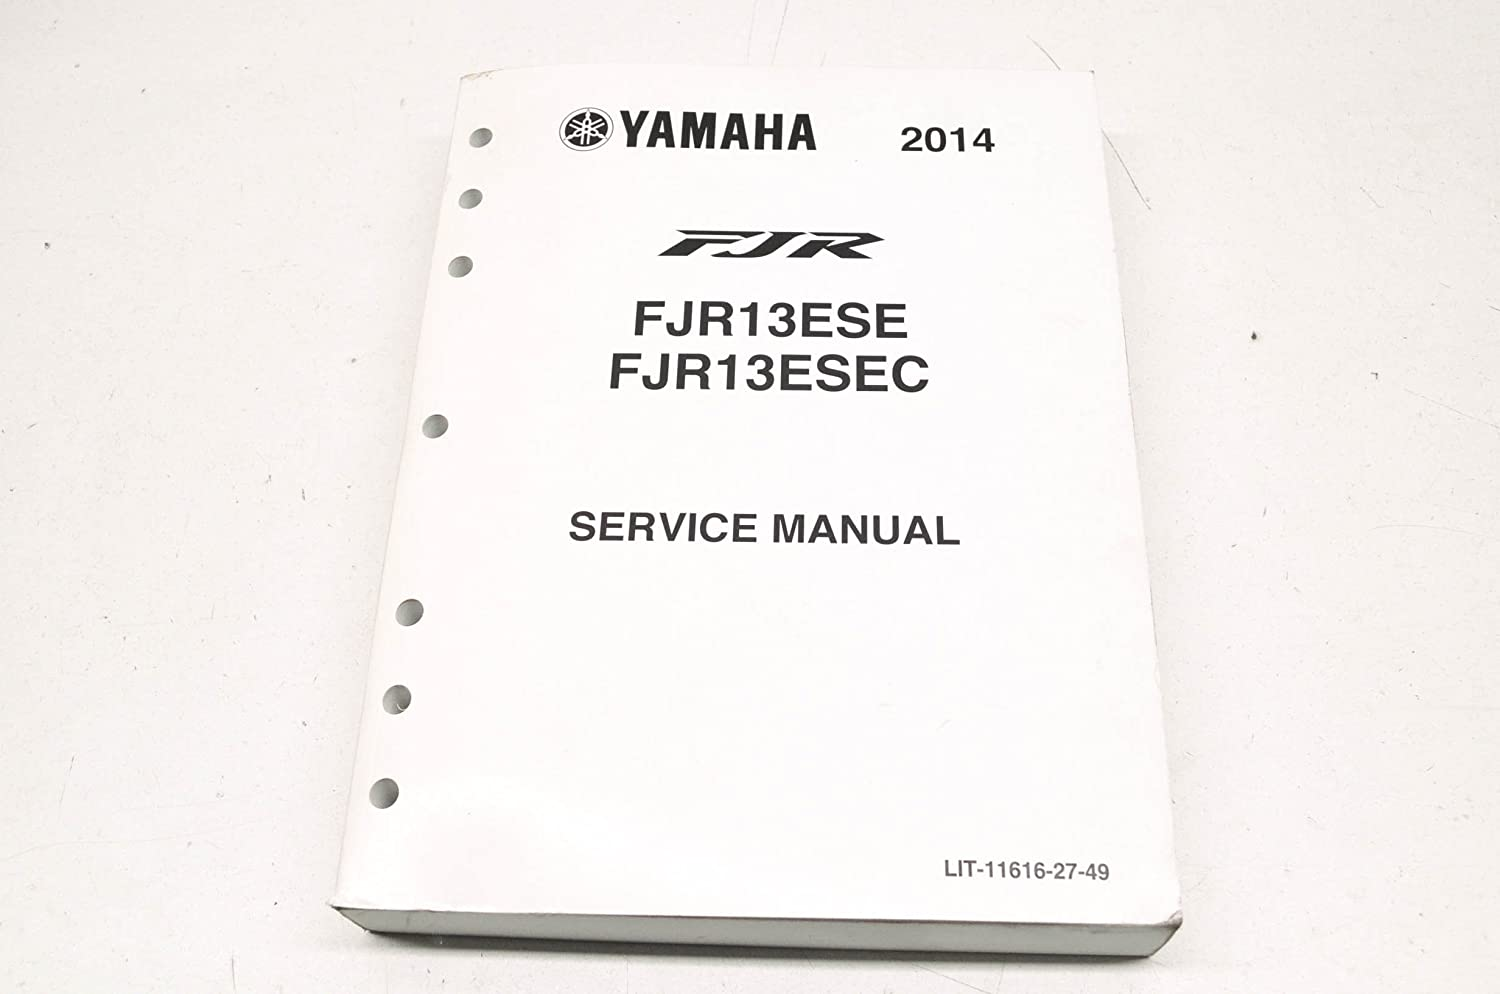 2015 Fjr1300 Manual Samsung Sgh N620 Service Array Amazon Com Factory 2014 Genuine Yamaha Oem Rh